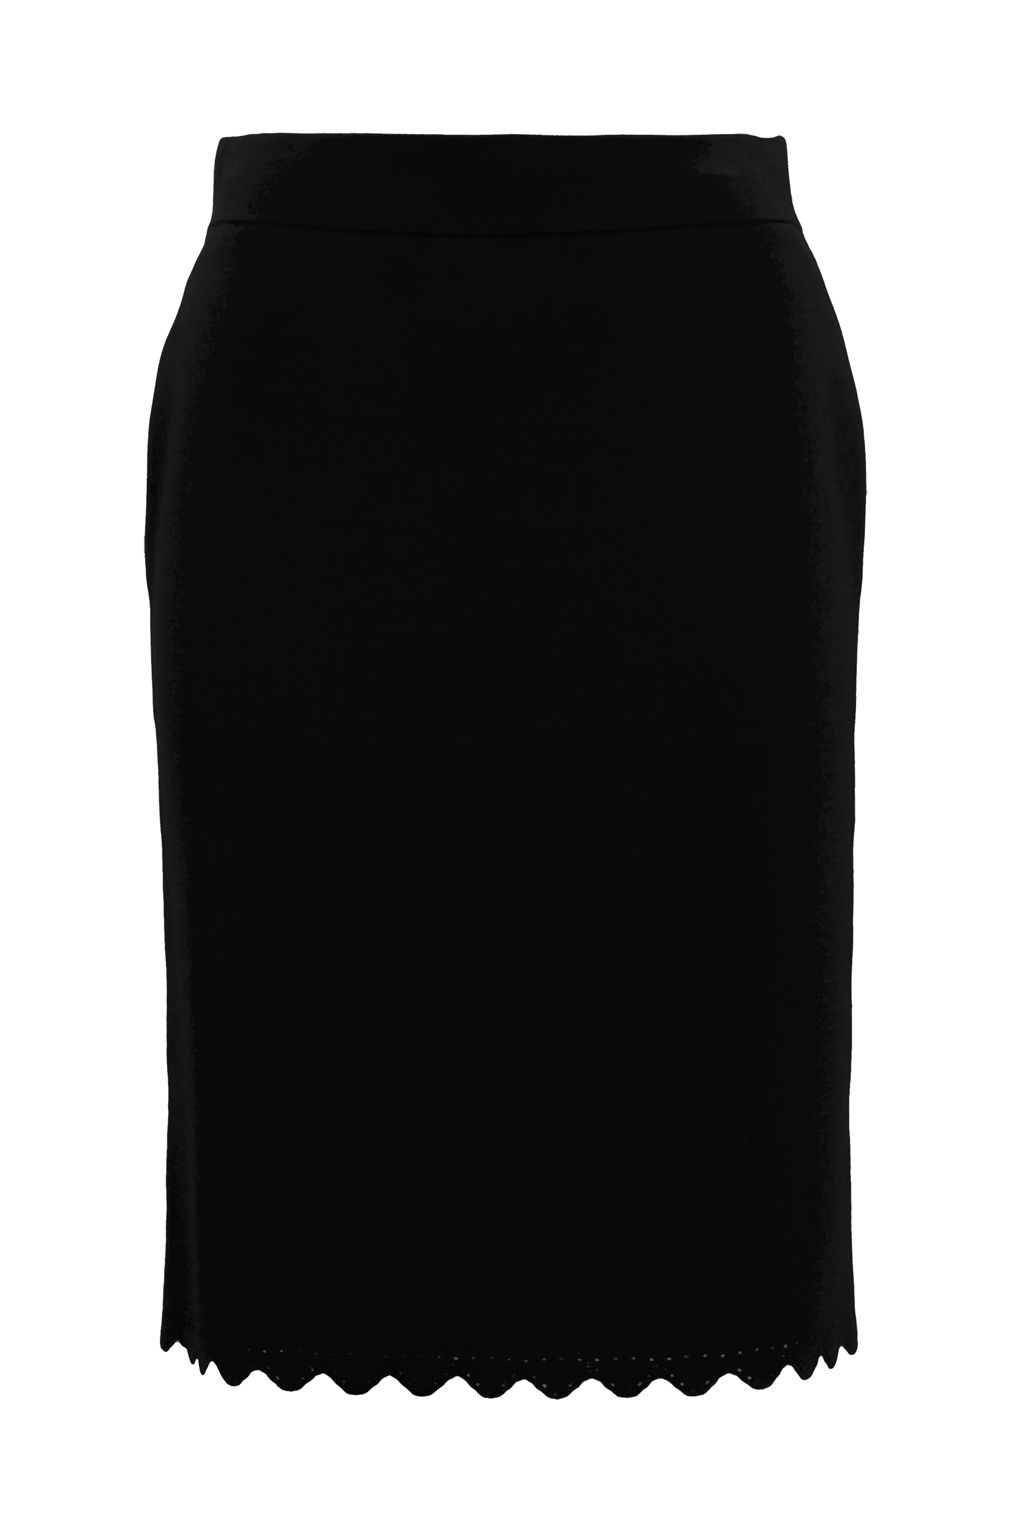 French Connection Lela Crepe Knit Pencil Skirt, Black